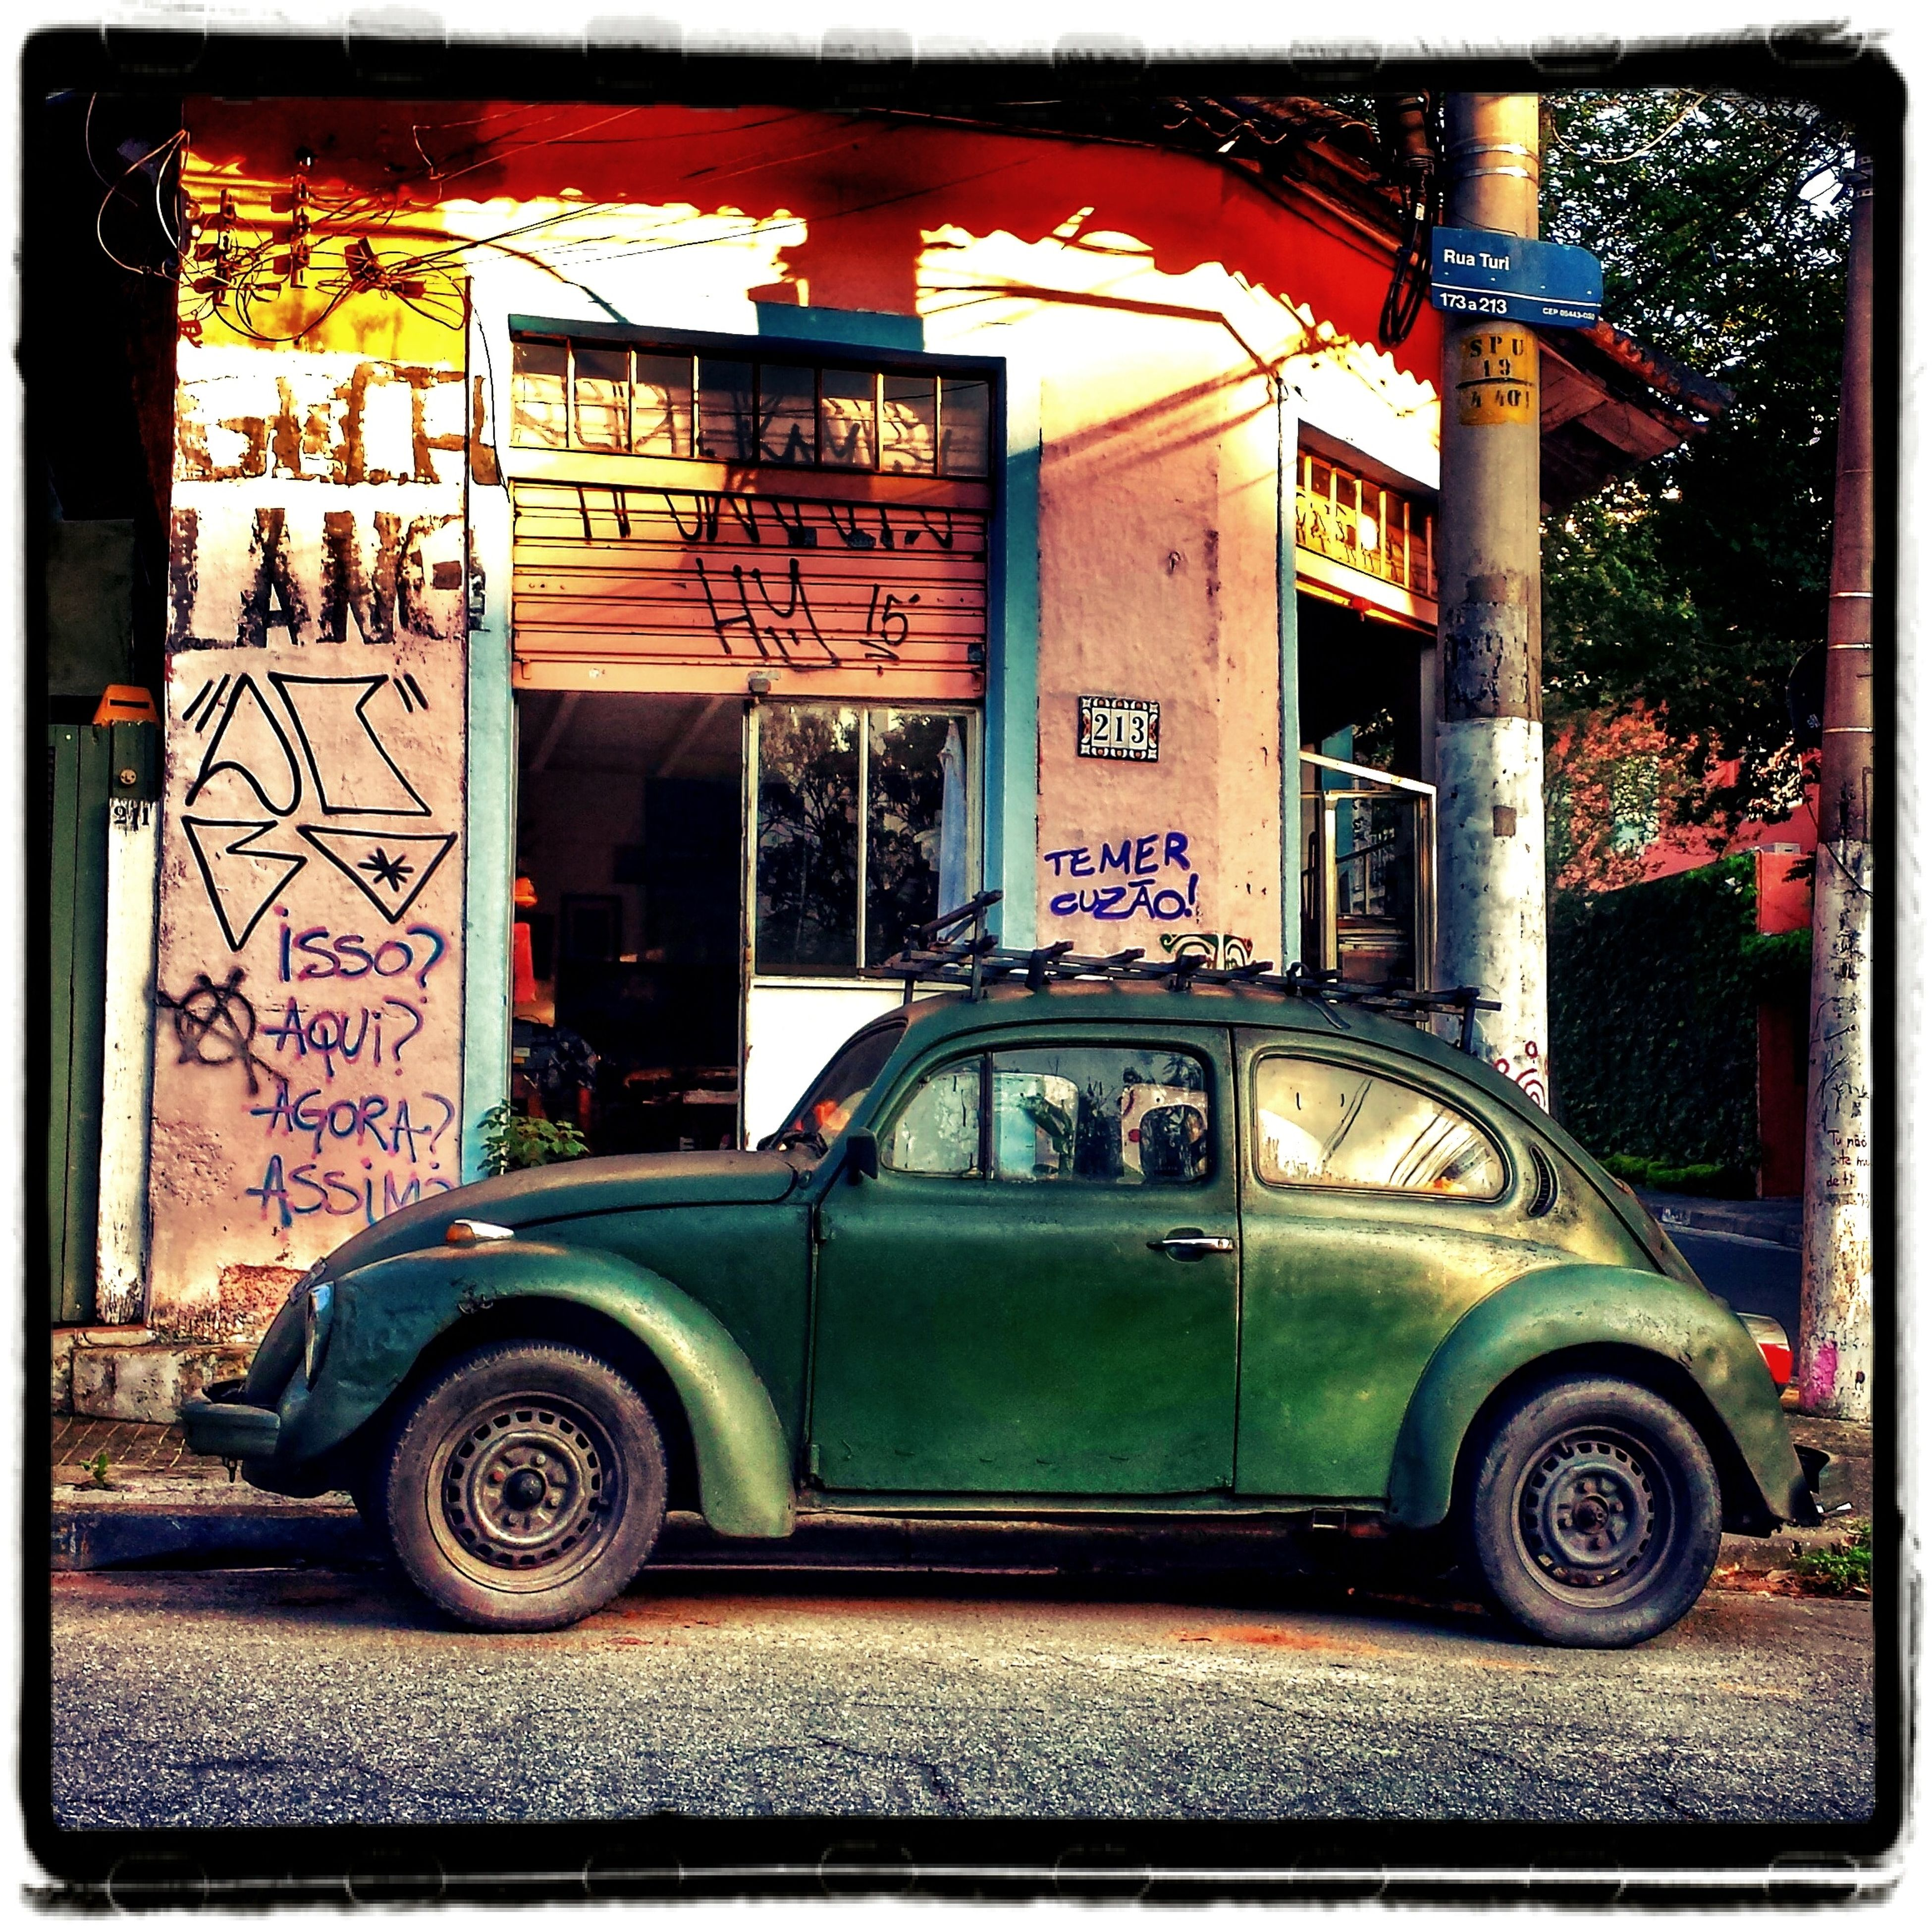 car, old-fashioned, text, no people, city, outdoors, day, architecture